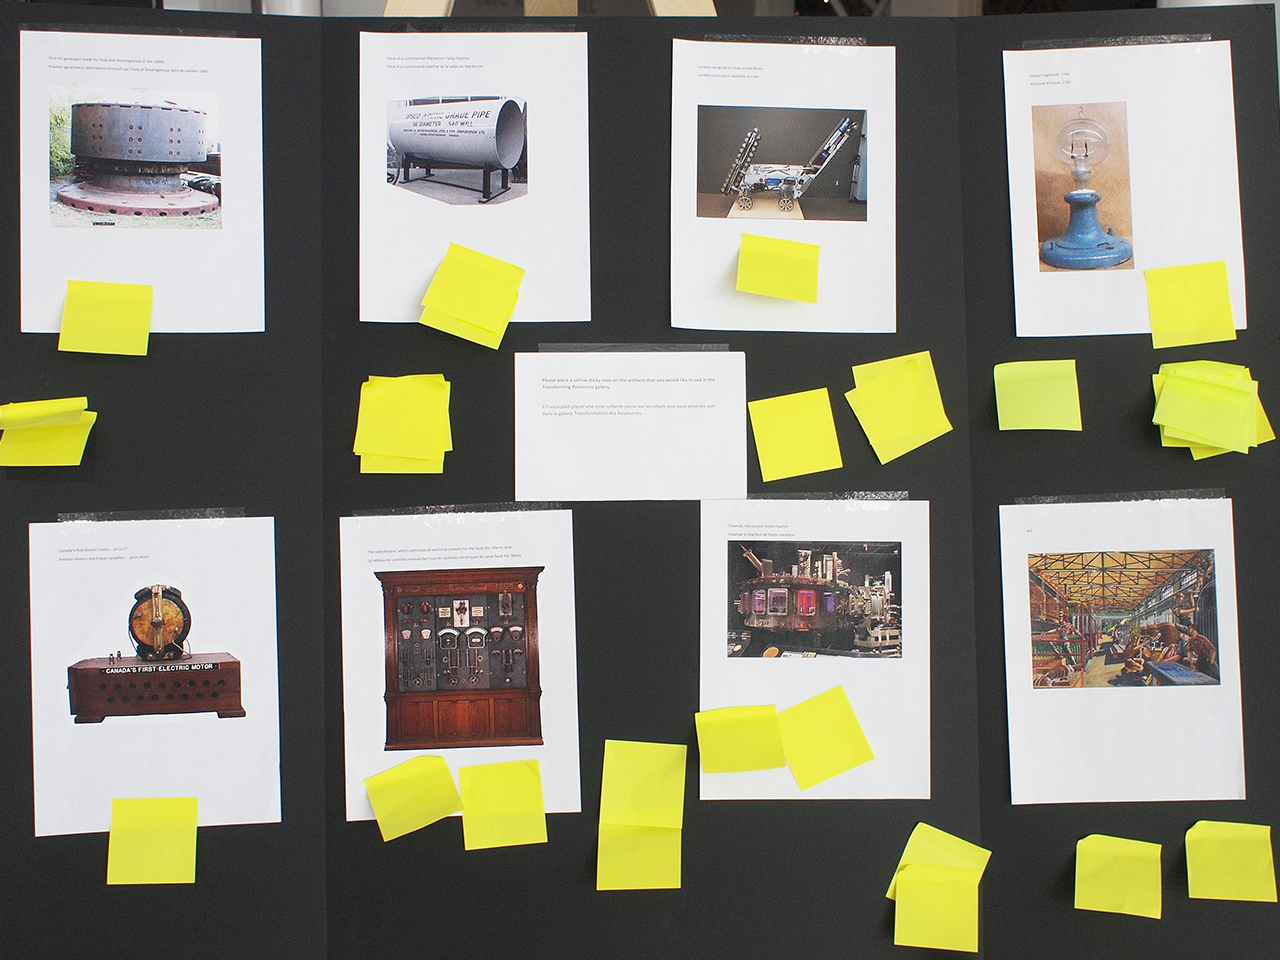 a board of images of large-scale technology artifacts